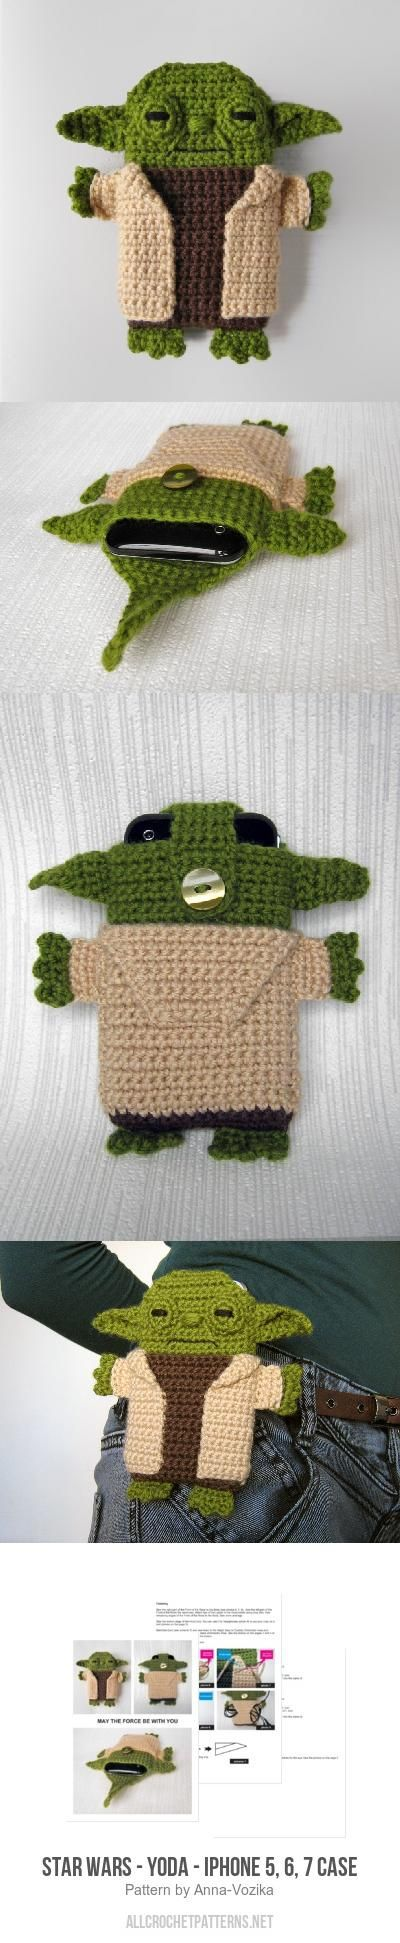 Star Wars - Yoda - iPhone 5, 6, 7 case crochet pattern by Anna ...